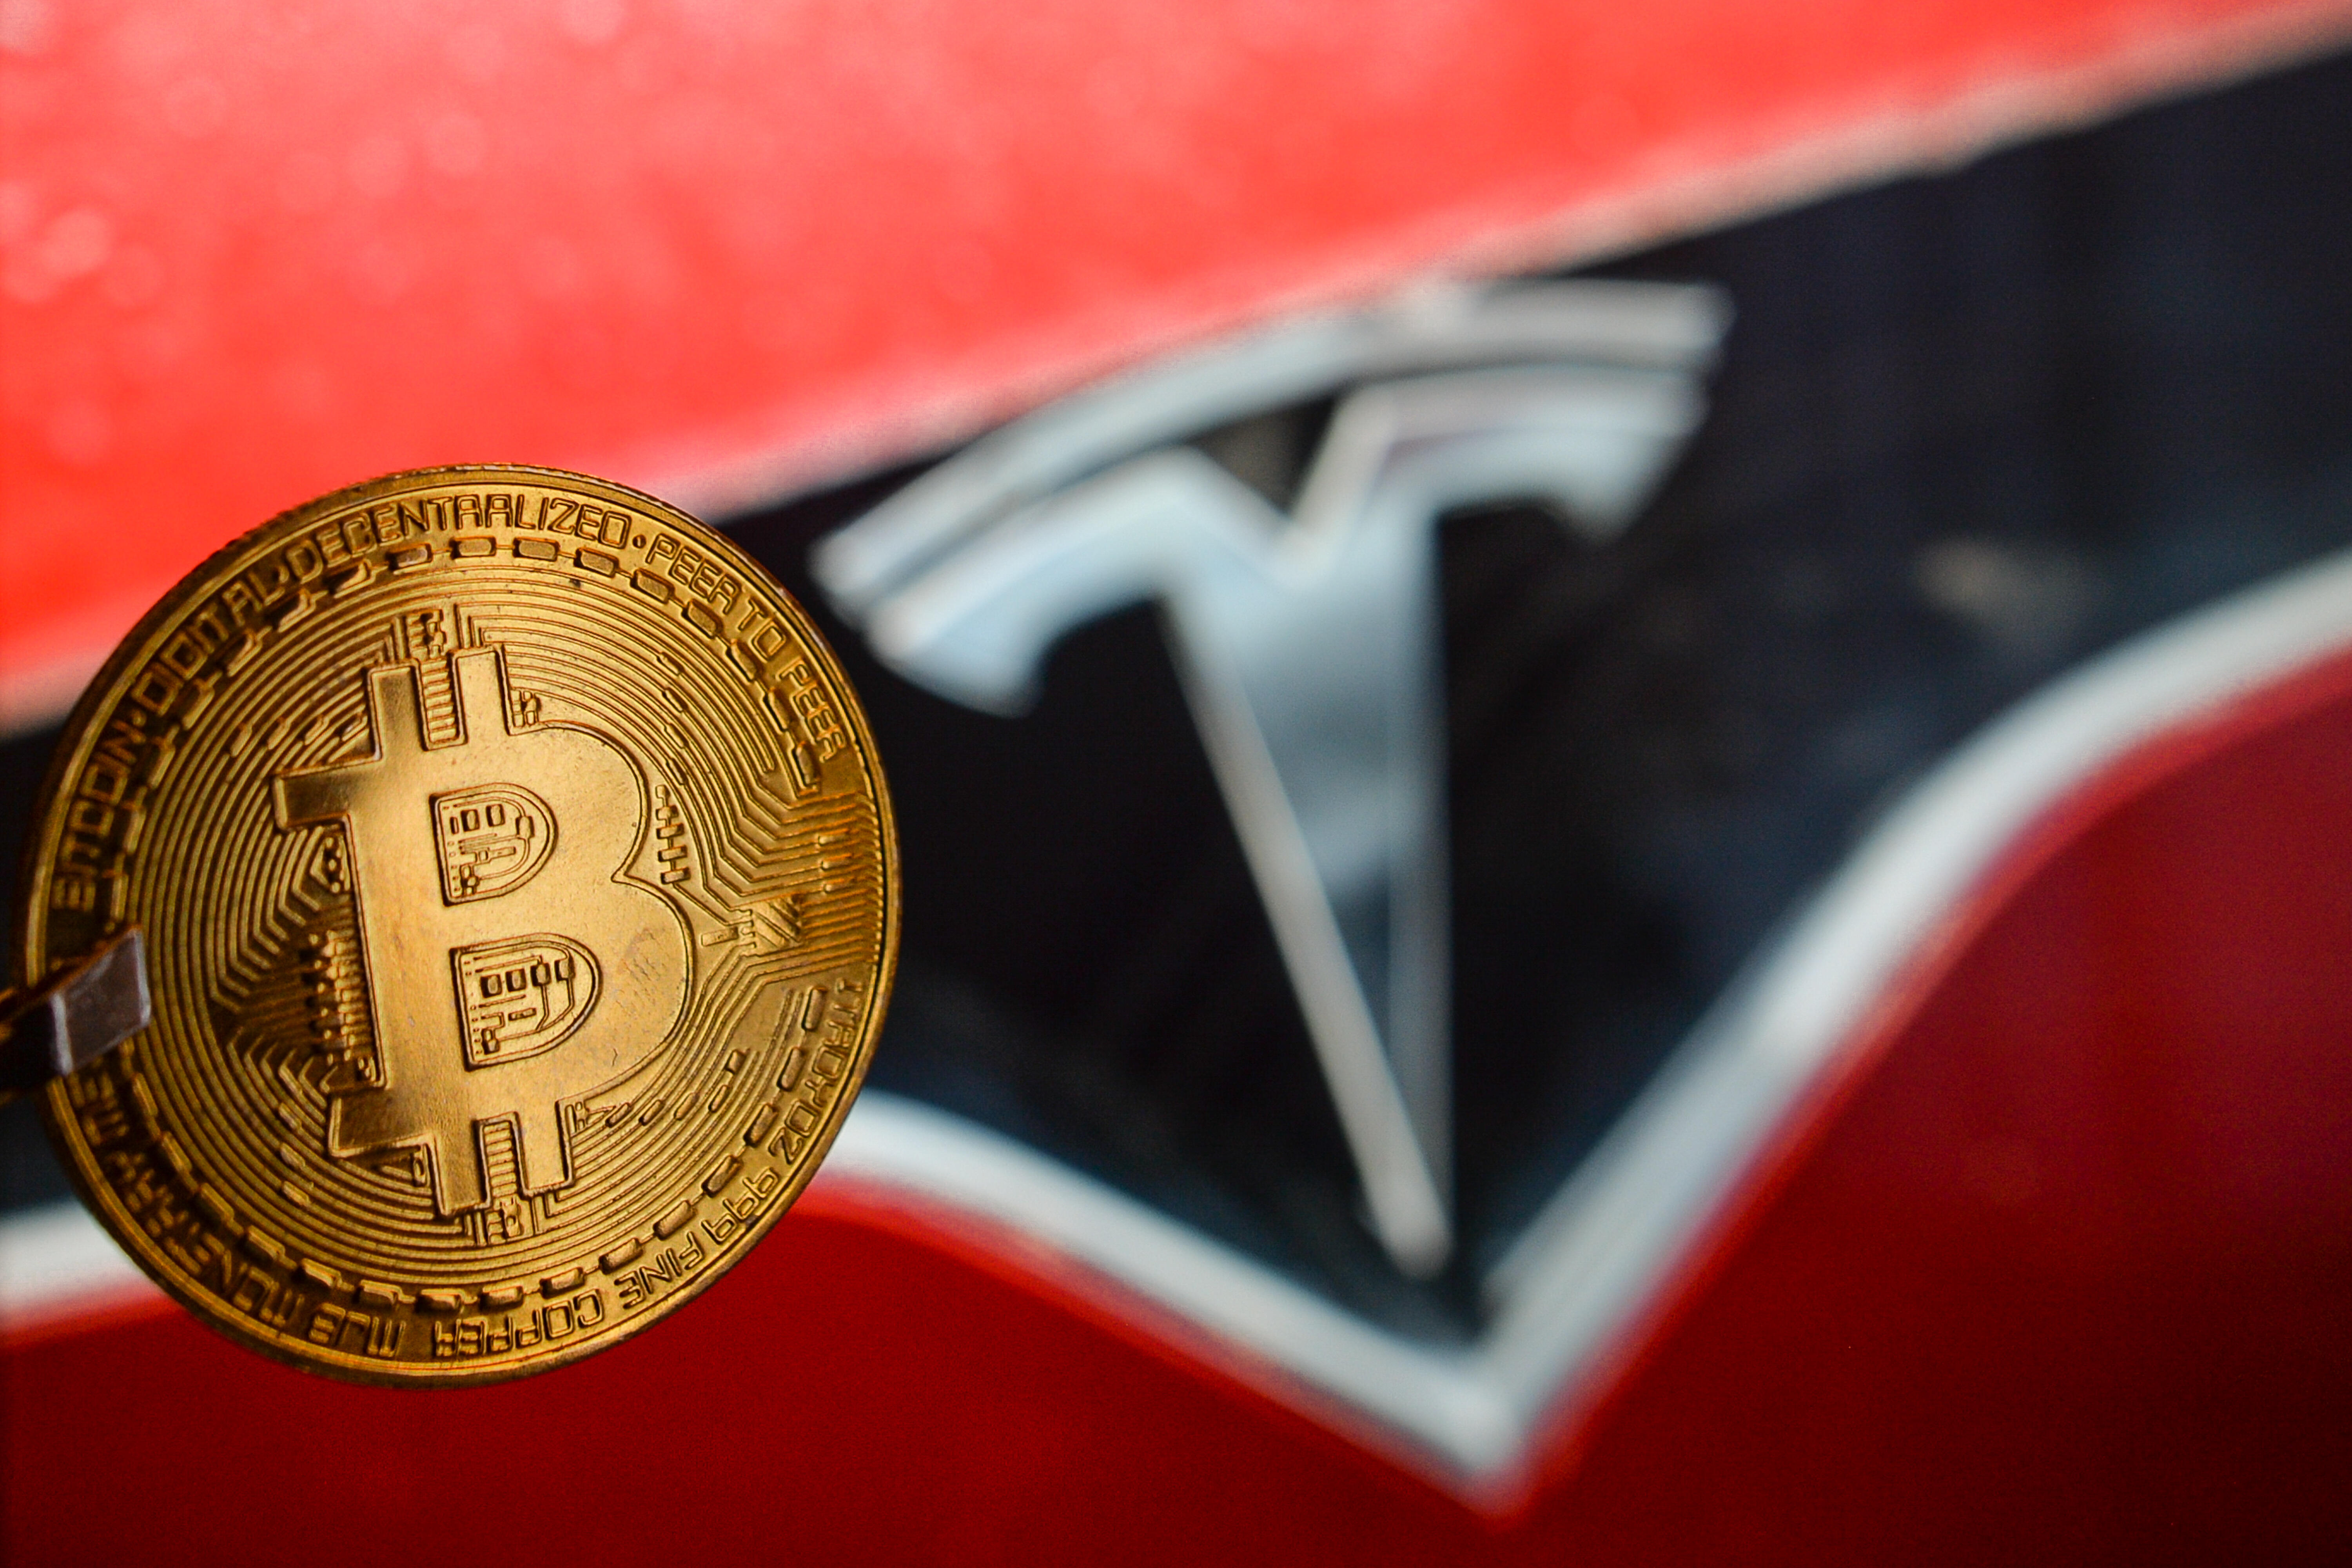 Musk says Tesla will accept Bitcoin when clean energy is used in mining     - Roadshow